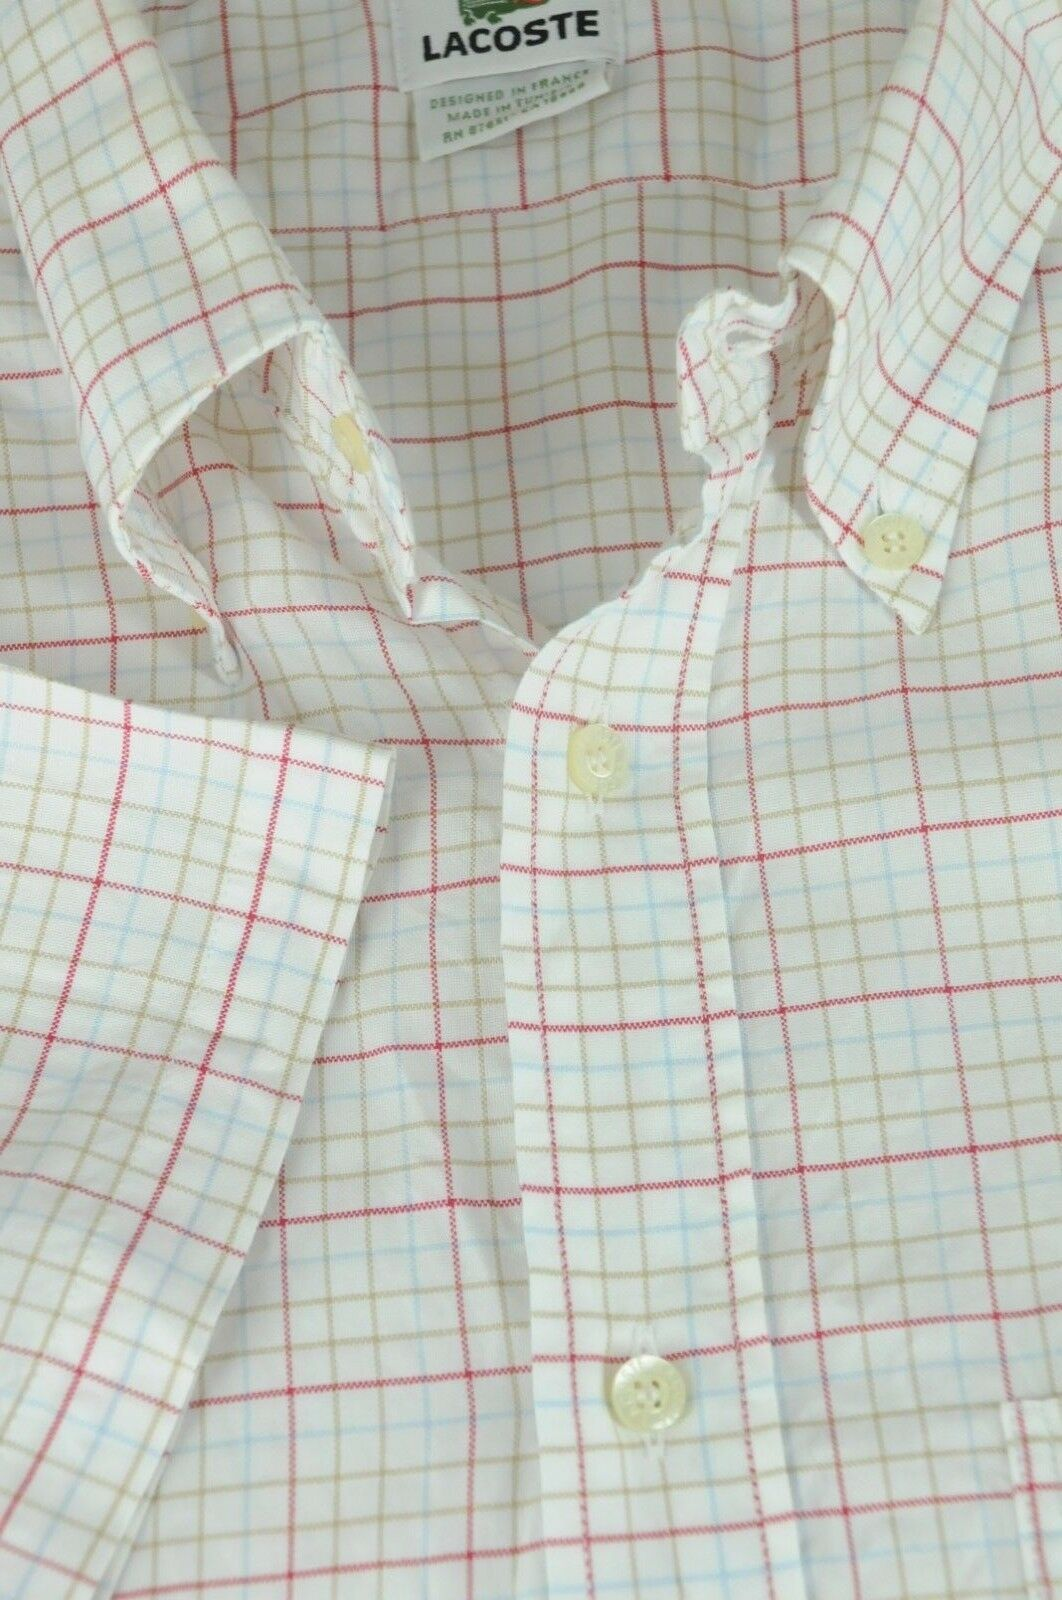 0bf2b799 Lacoste Men's White Red Brown & bluee Geo Cotton Casual Shirt XL XLarge  Size 46